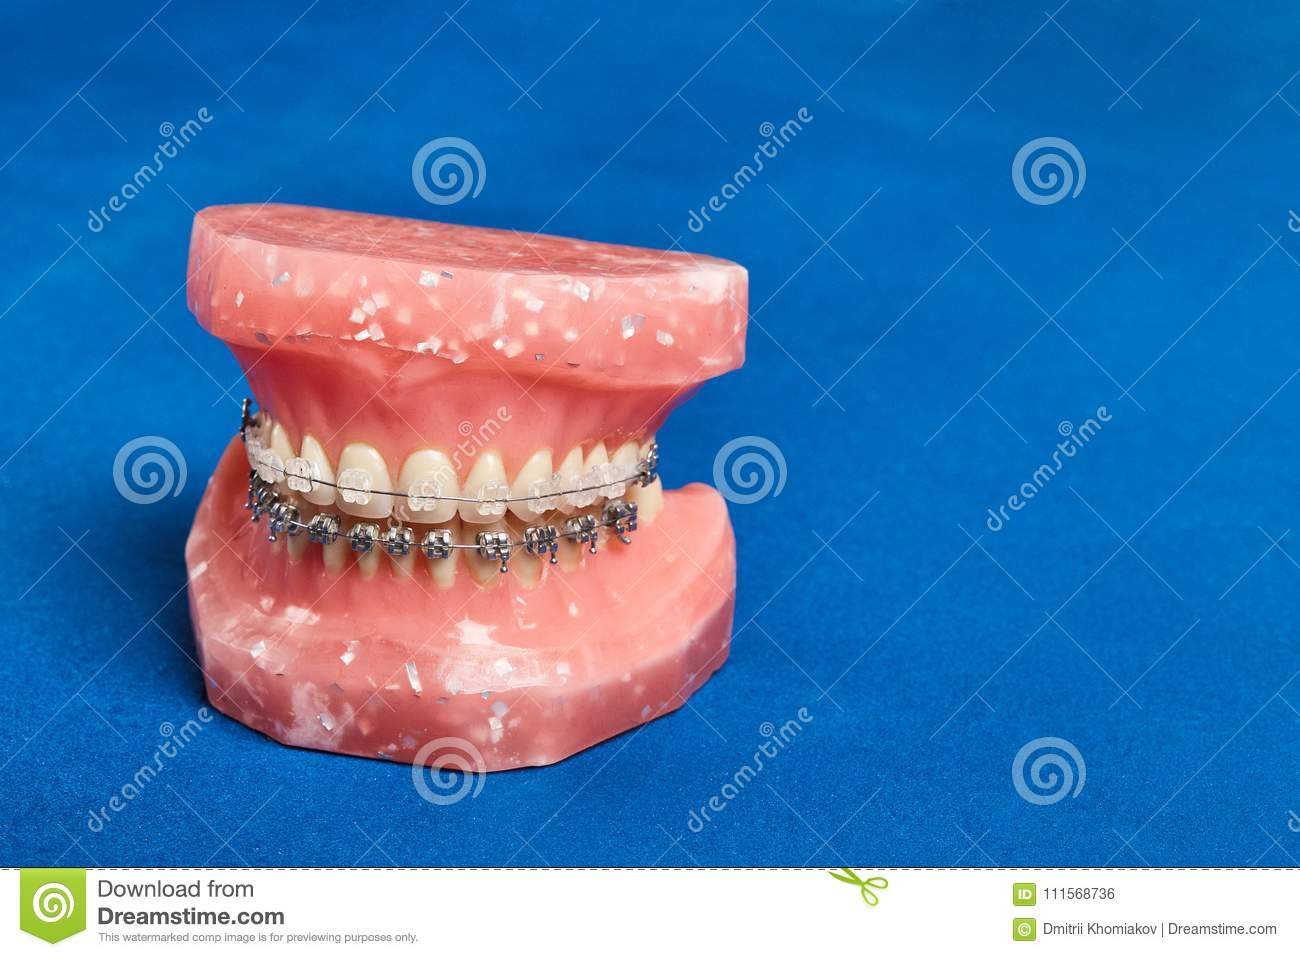 Human Jaw Or Teeth Model With Metal Wired Dental Braces Stock Photo ...